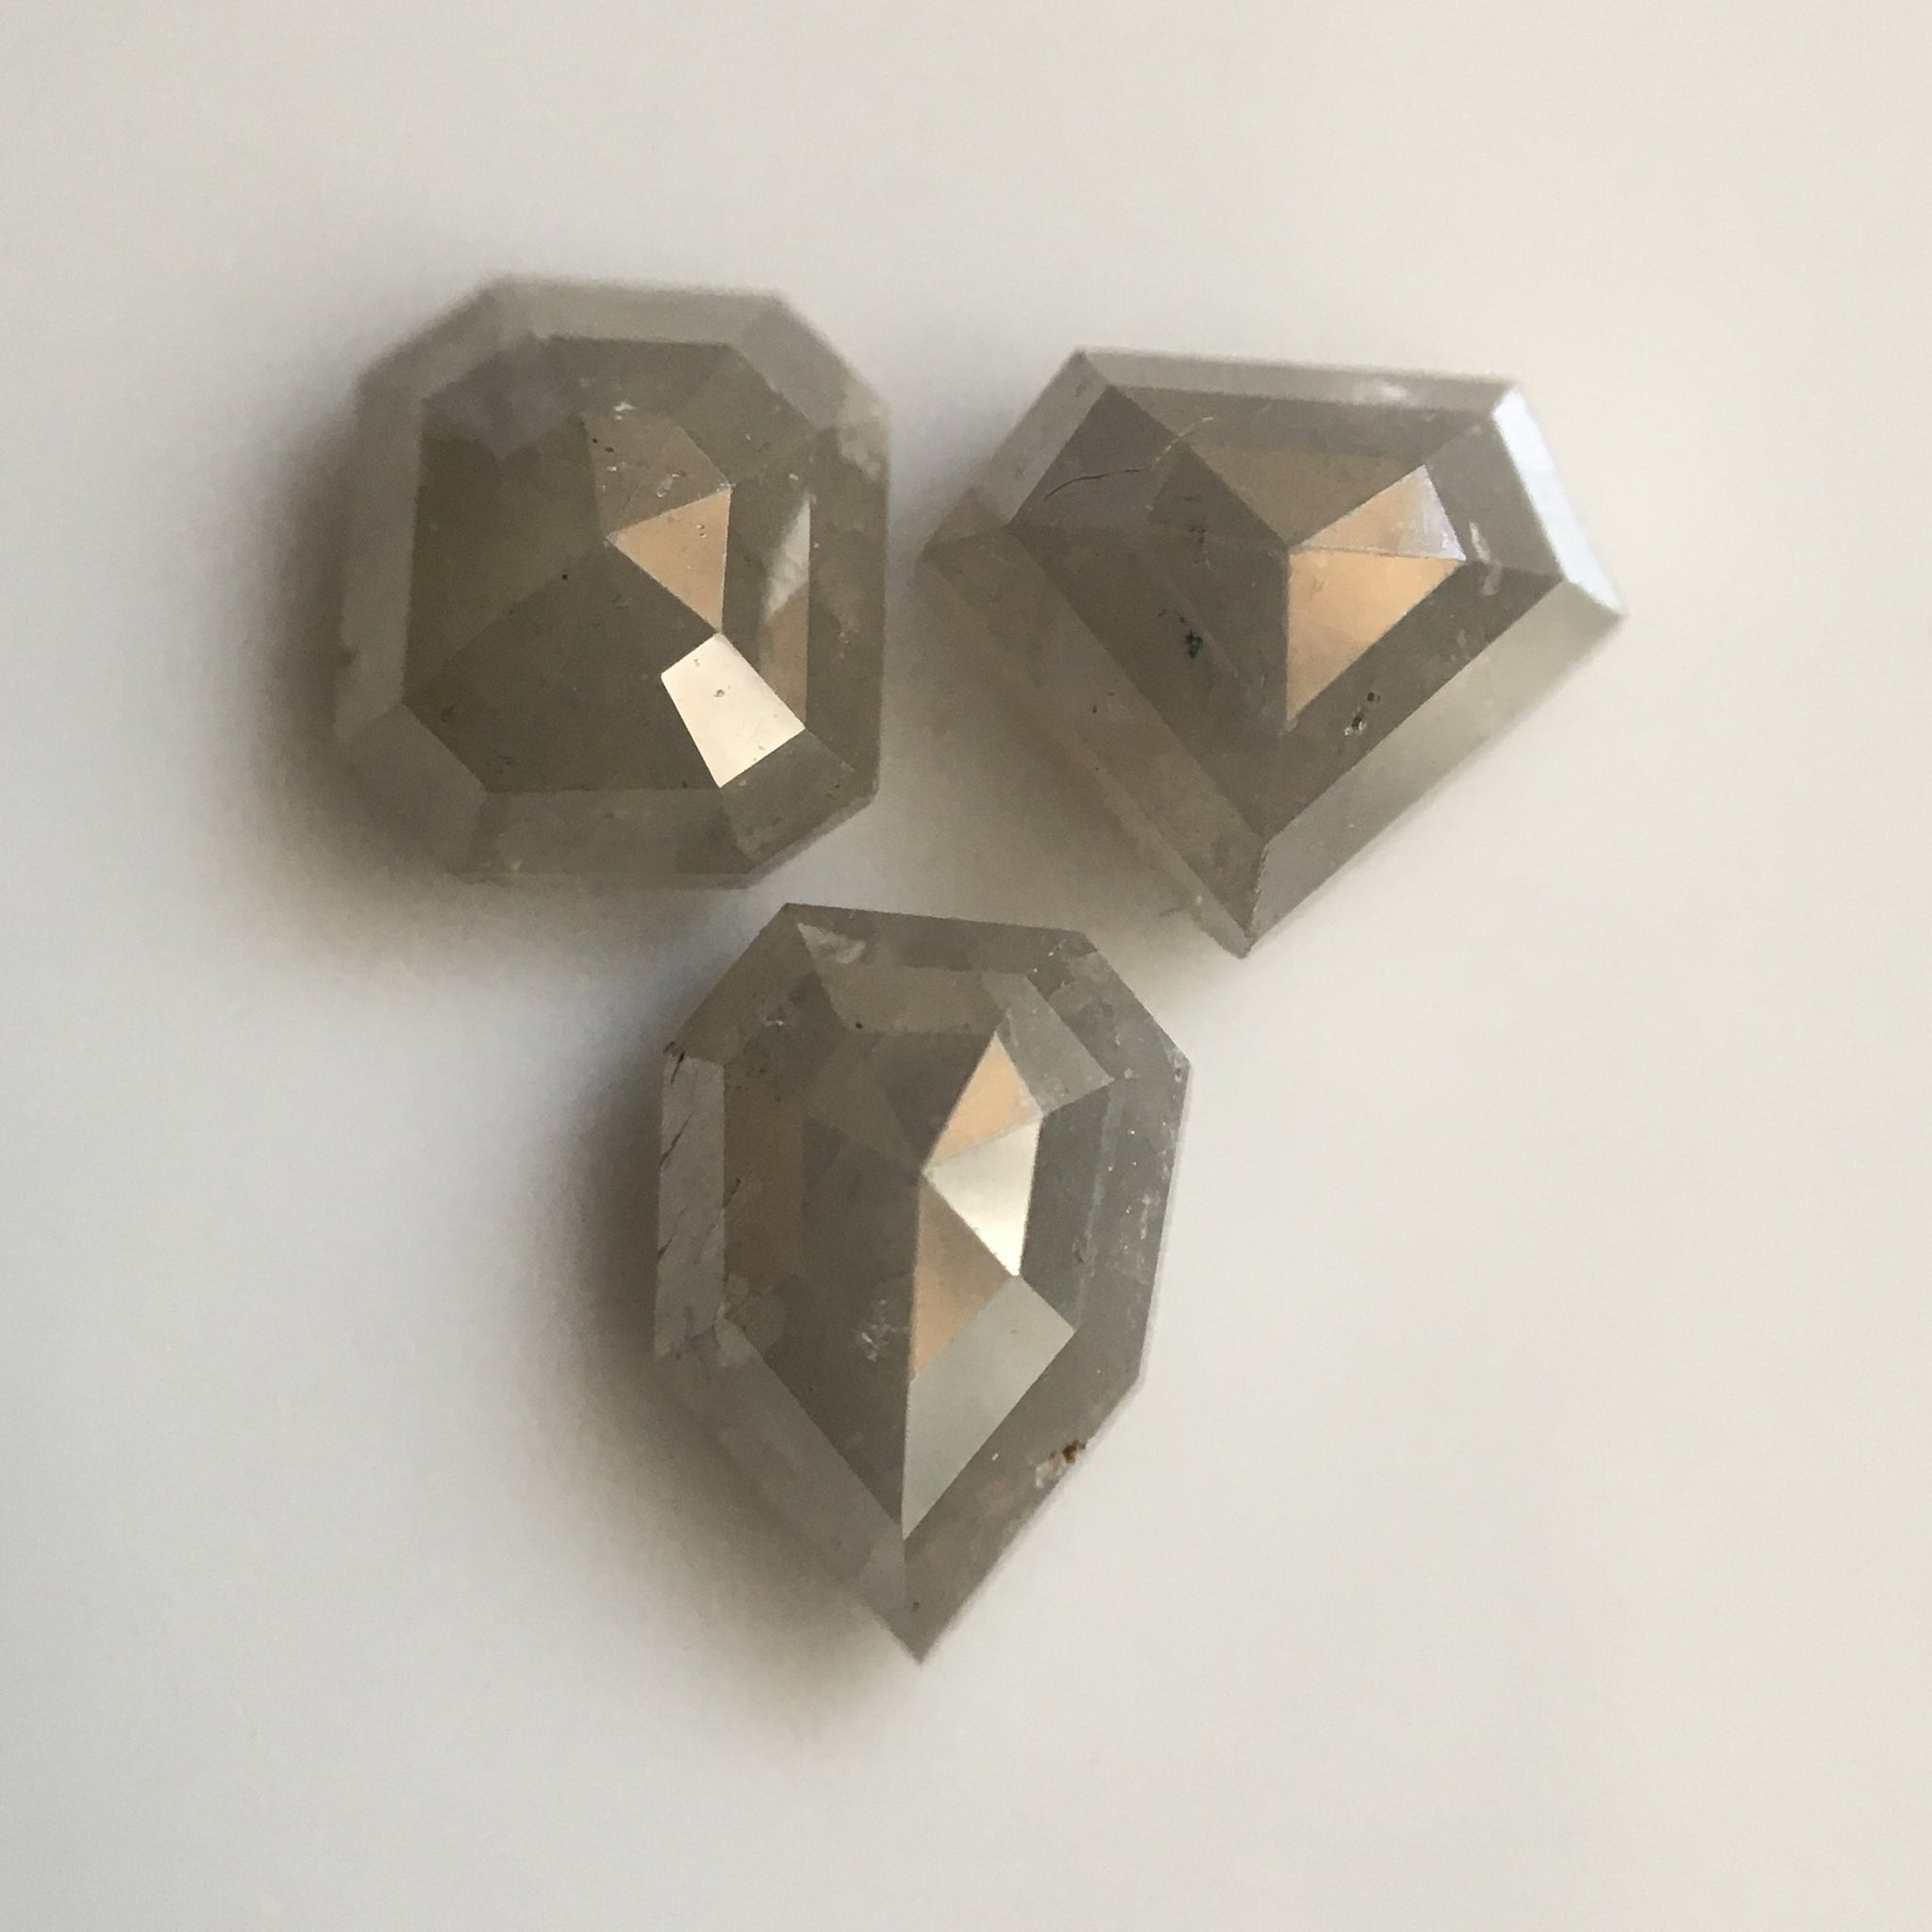 2.43 Ct 3 Pcs Natural Light Gray Color Mix Shape Loose Diamond, Beautiful sparkling faceted Diamond perfect for Jewelry AJ03/22 - Amba Jewel